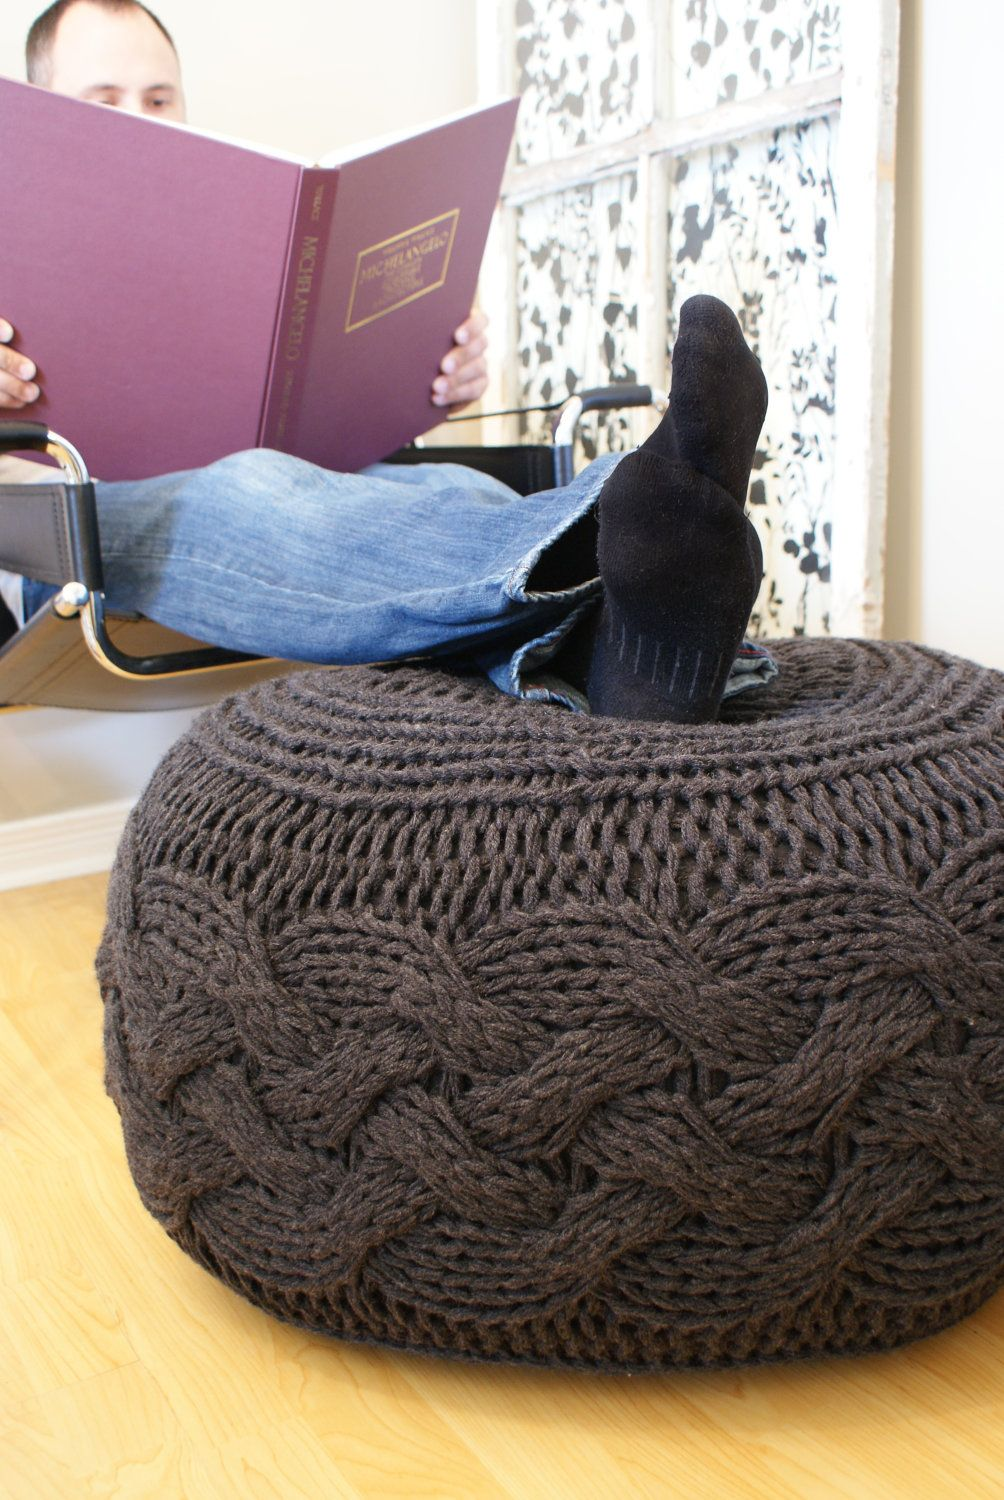 Knitting PATTERN- Cabled pillow pouf | For the Home | Pinterest ...